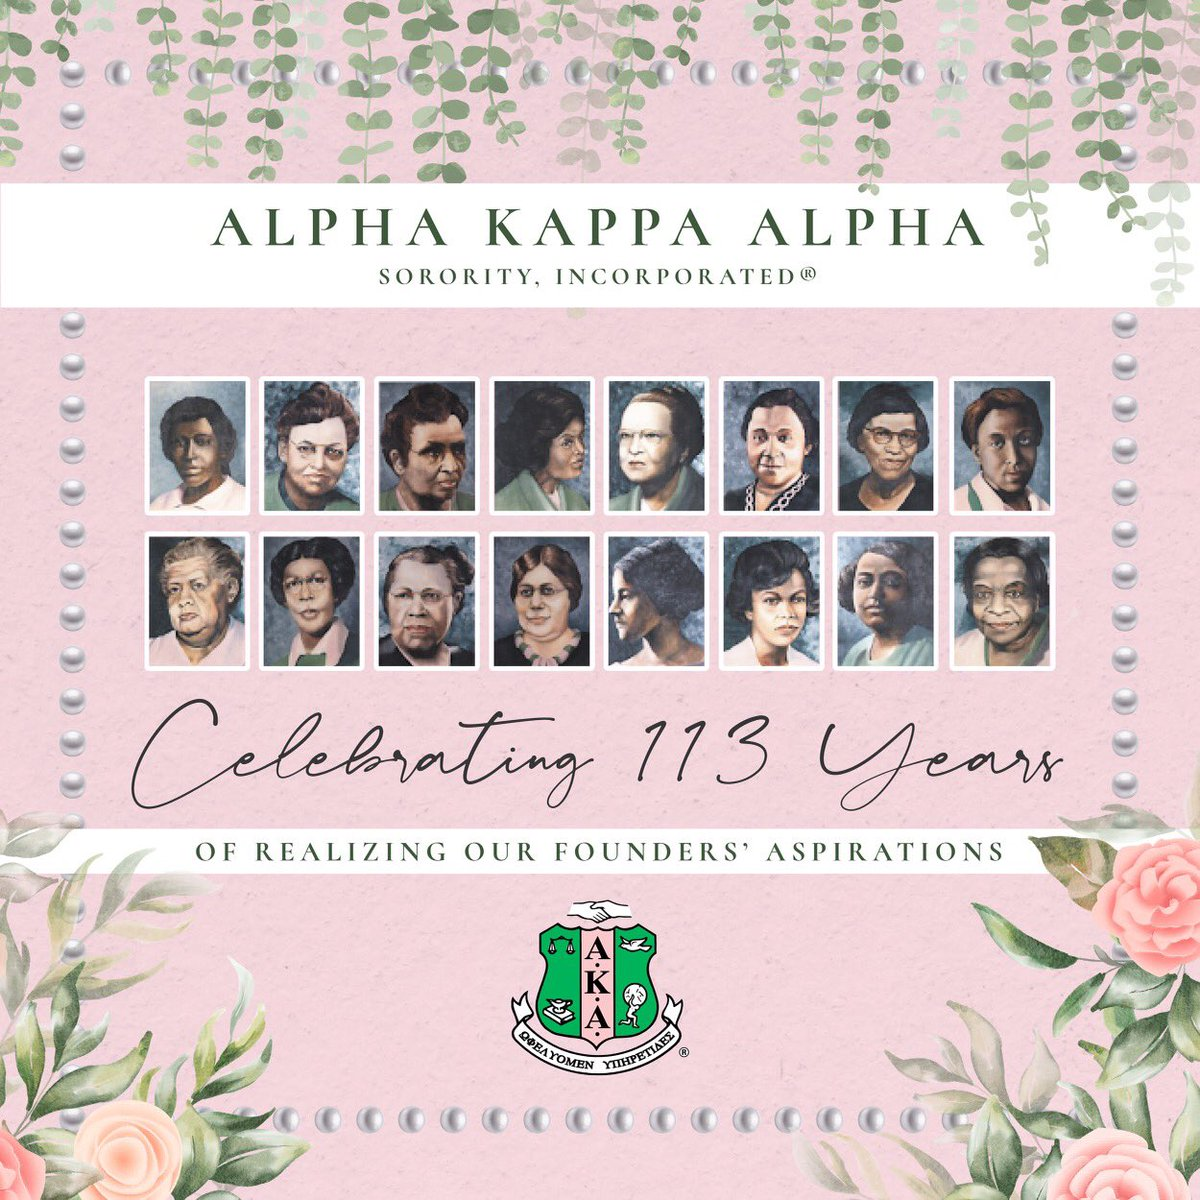 Celebrating 113 years of excellence, scholarship, and service to mankind,  Happy Founder's Day to my sisters of Alpha Kappa Alpha Sorority, Incorporated! 💕💚 #AKA1908 #FoundersDay #J15